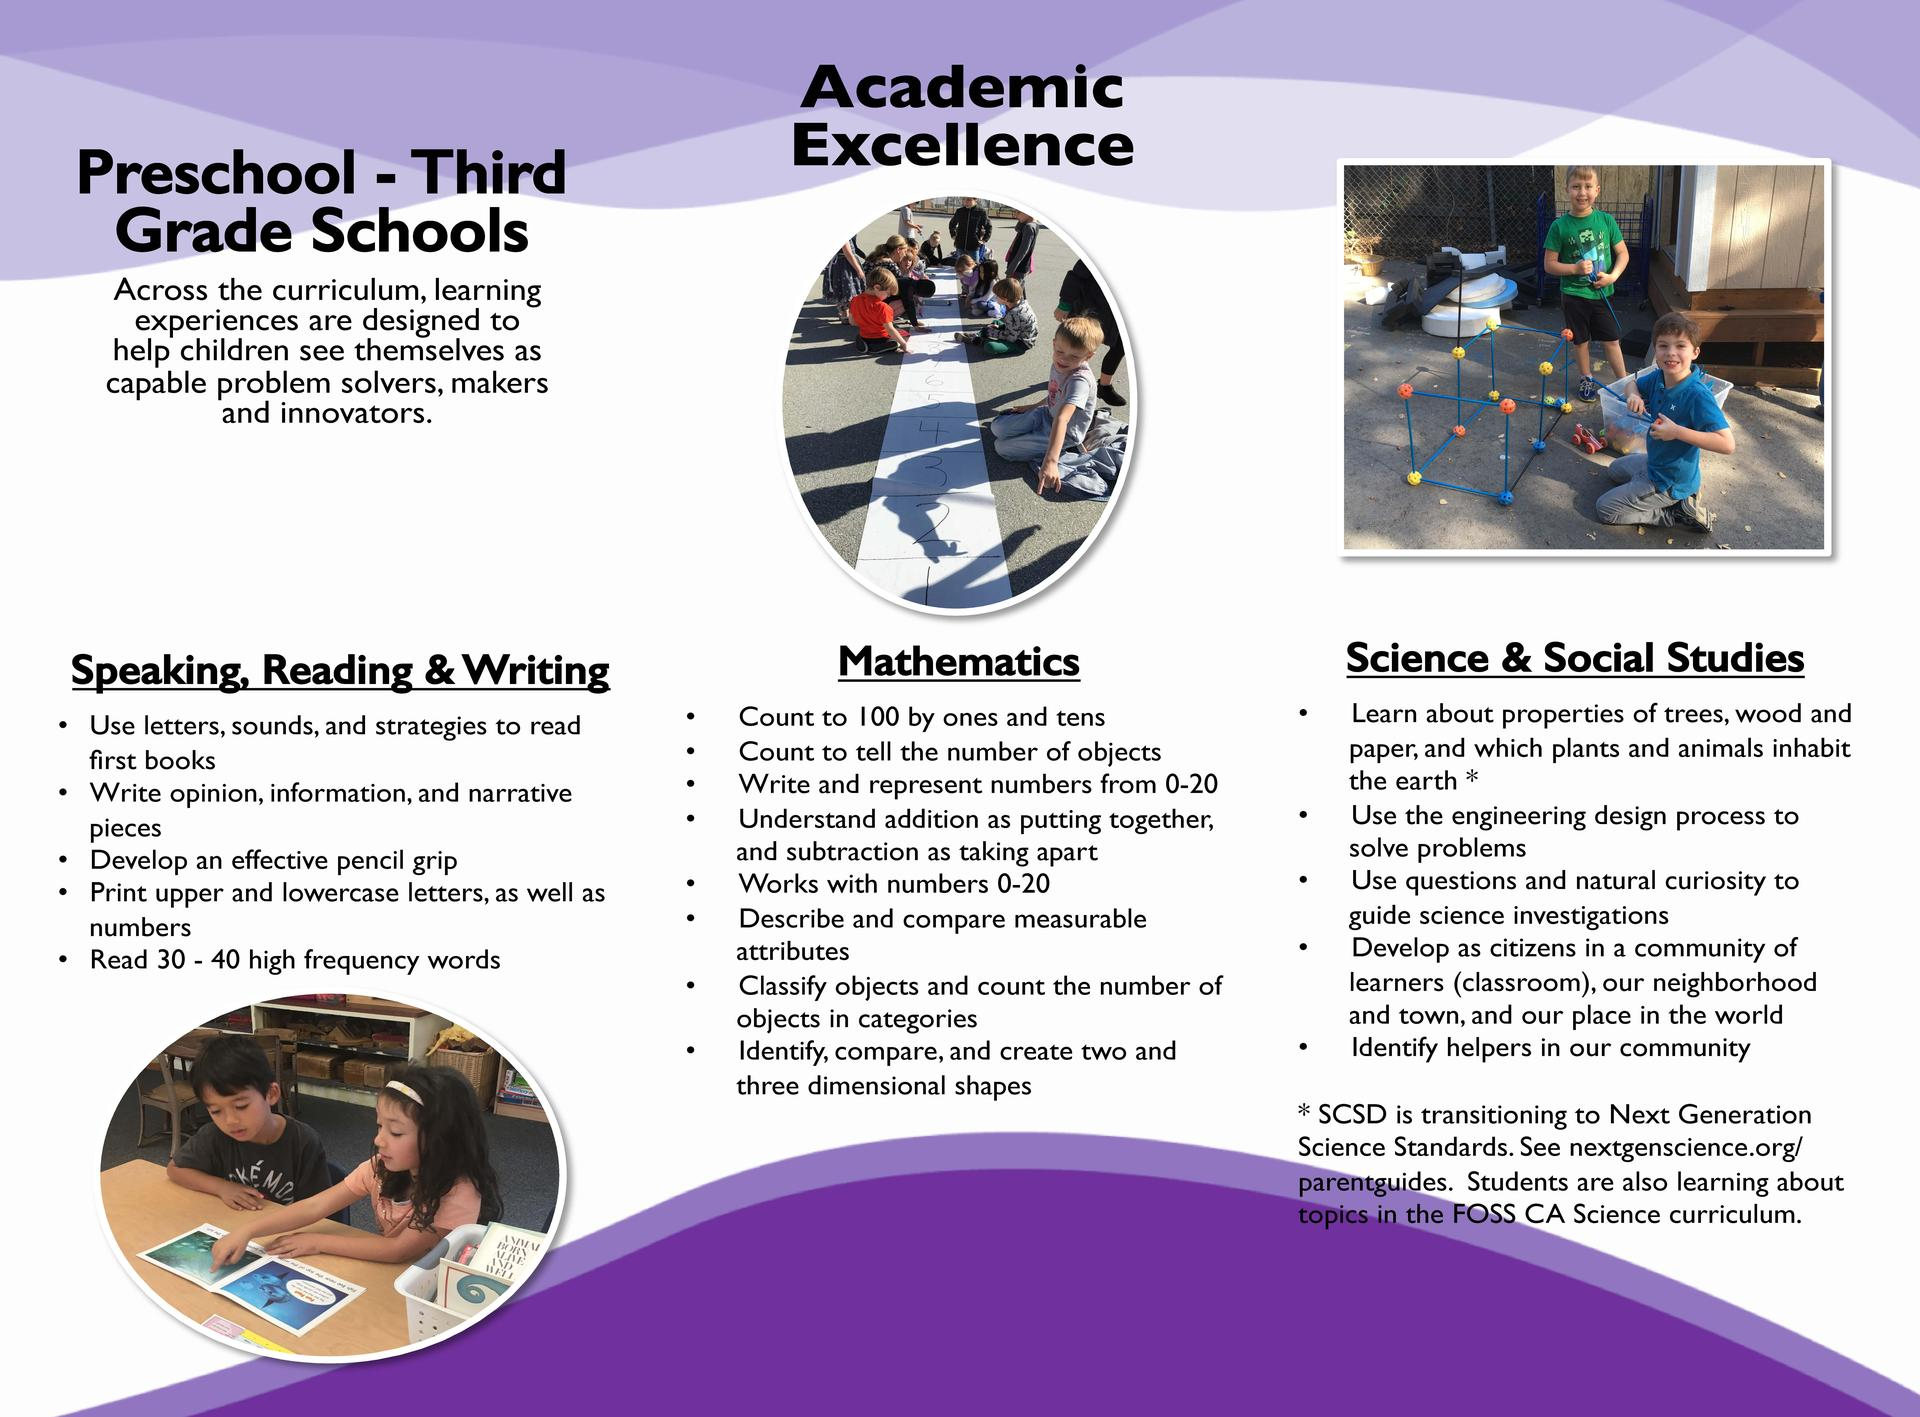 SCSD Learner Outcomes Brochure Image K